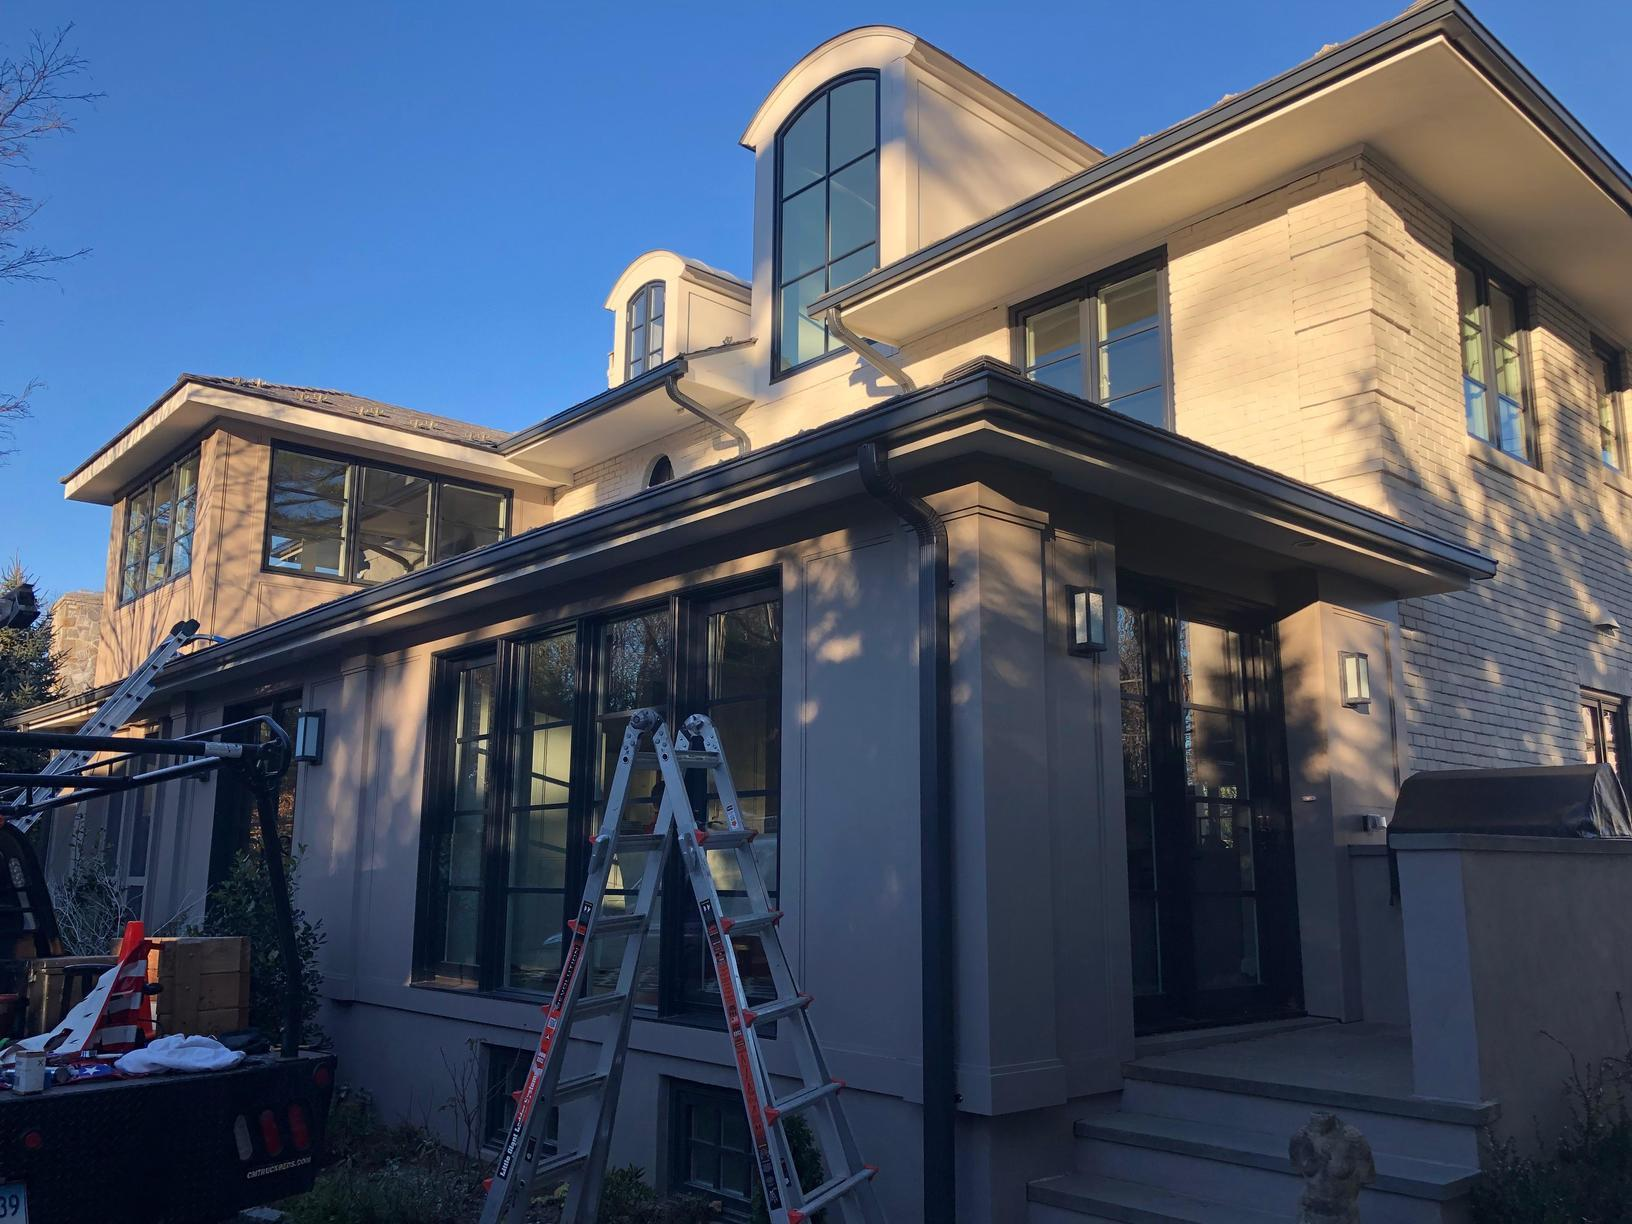 Rain Gutter Install in Greenwich CT - After Photo